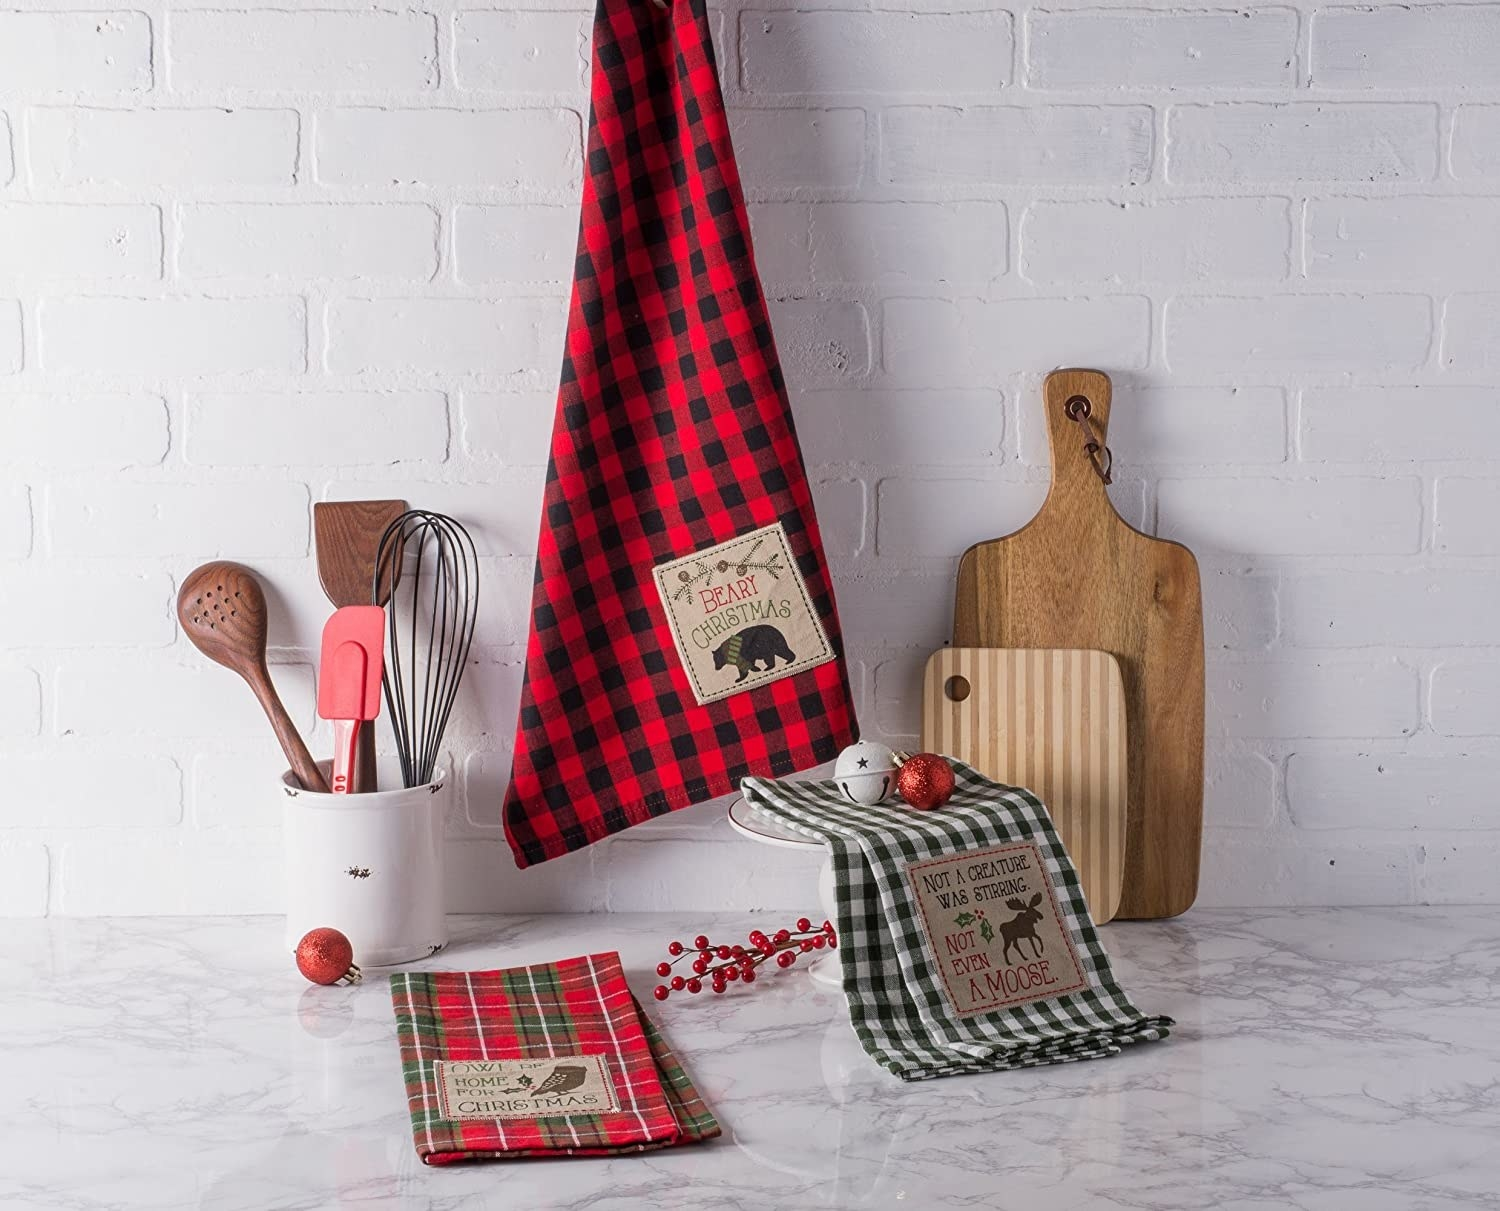 A trio of holiday-themed gingham kitchen linens on a marble countertop